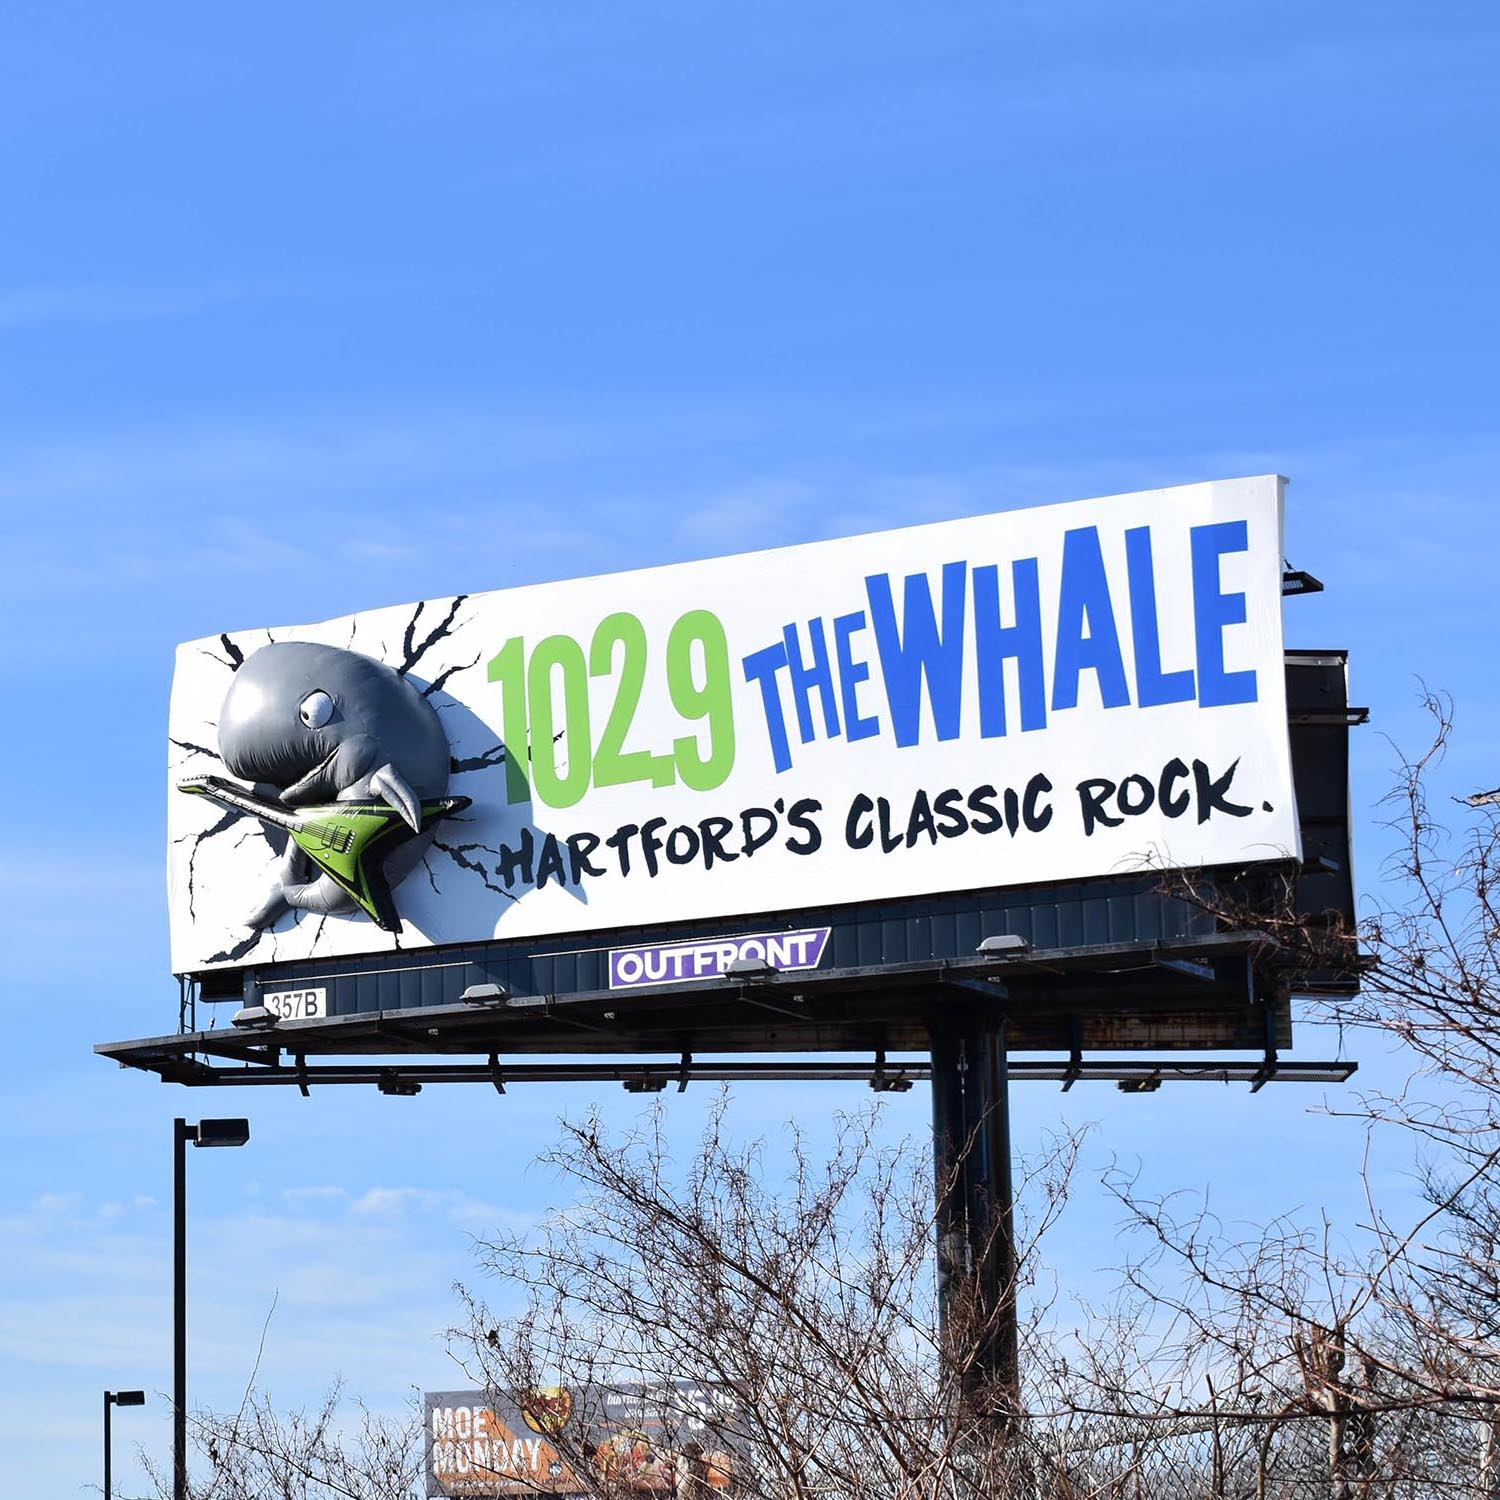 102.9 The Whale by Soft Signs 3D